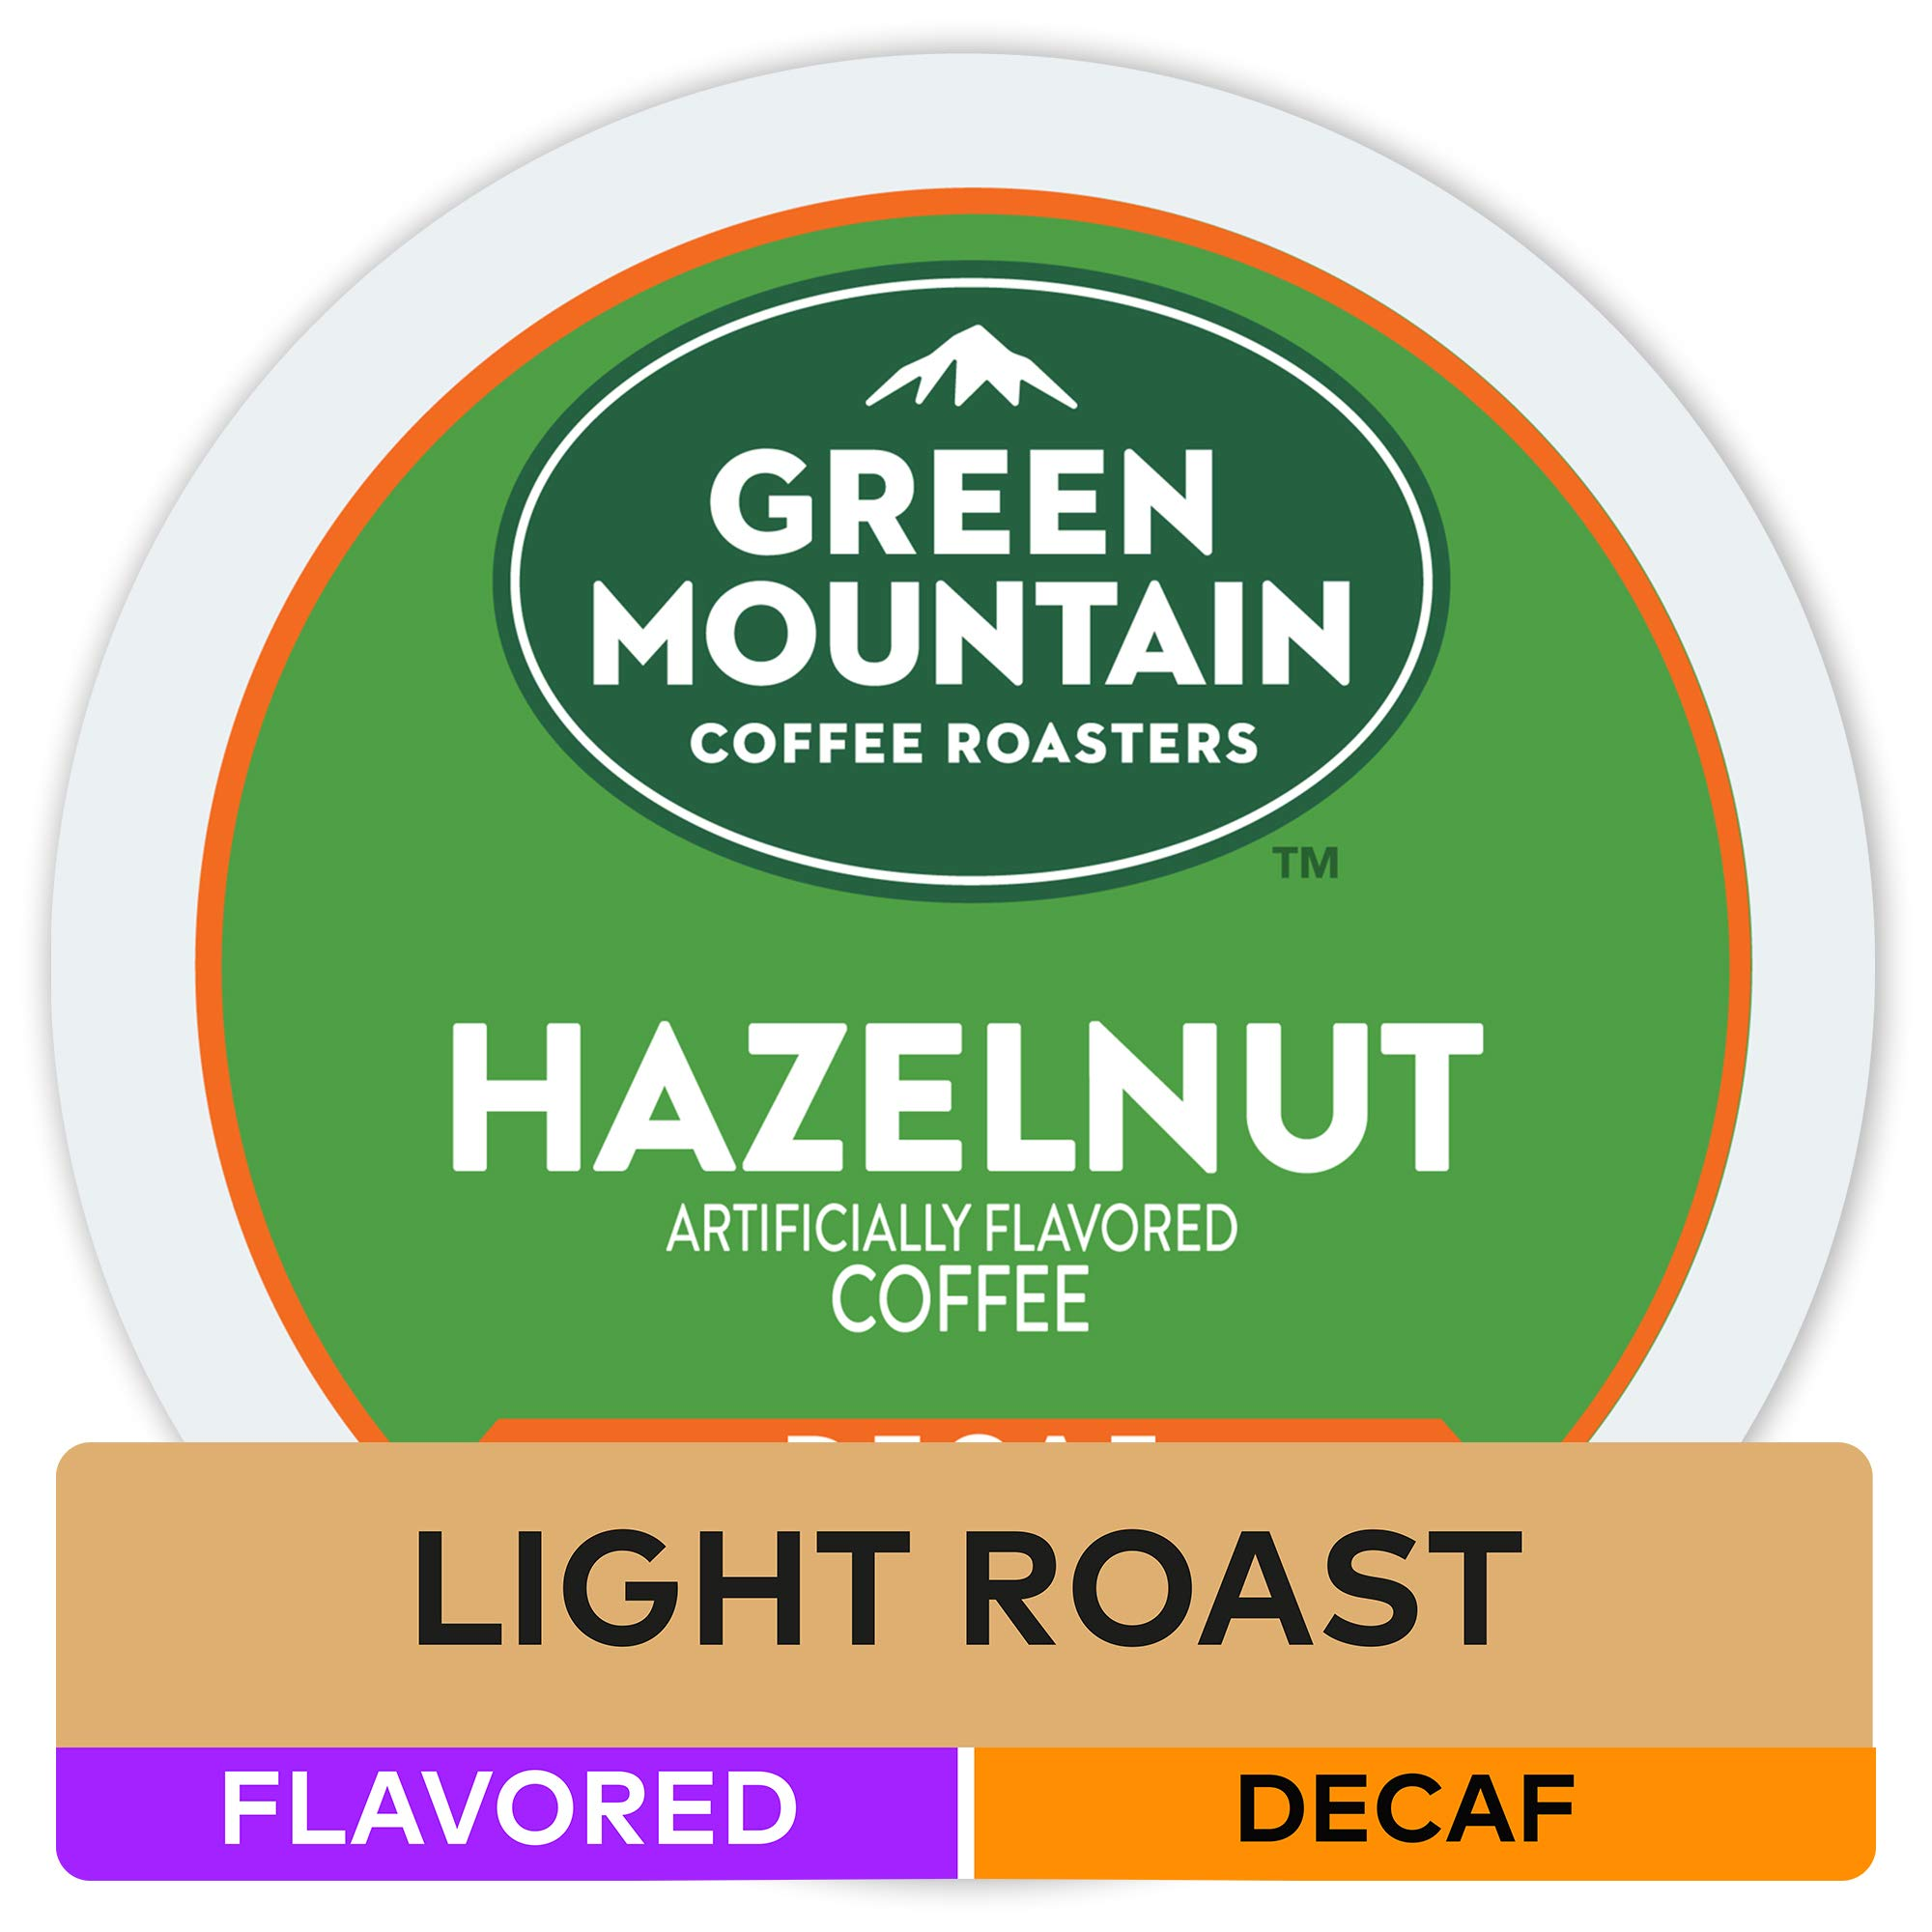 Green Mountain Coffee Roasters Hazelnut, Single Serve Coffee K-Cup Pod, Decaf, 12 Count (Pack of 6) (Packaging May Vary) by GMCR Flavored (Image #1)